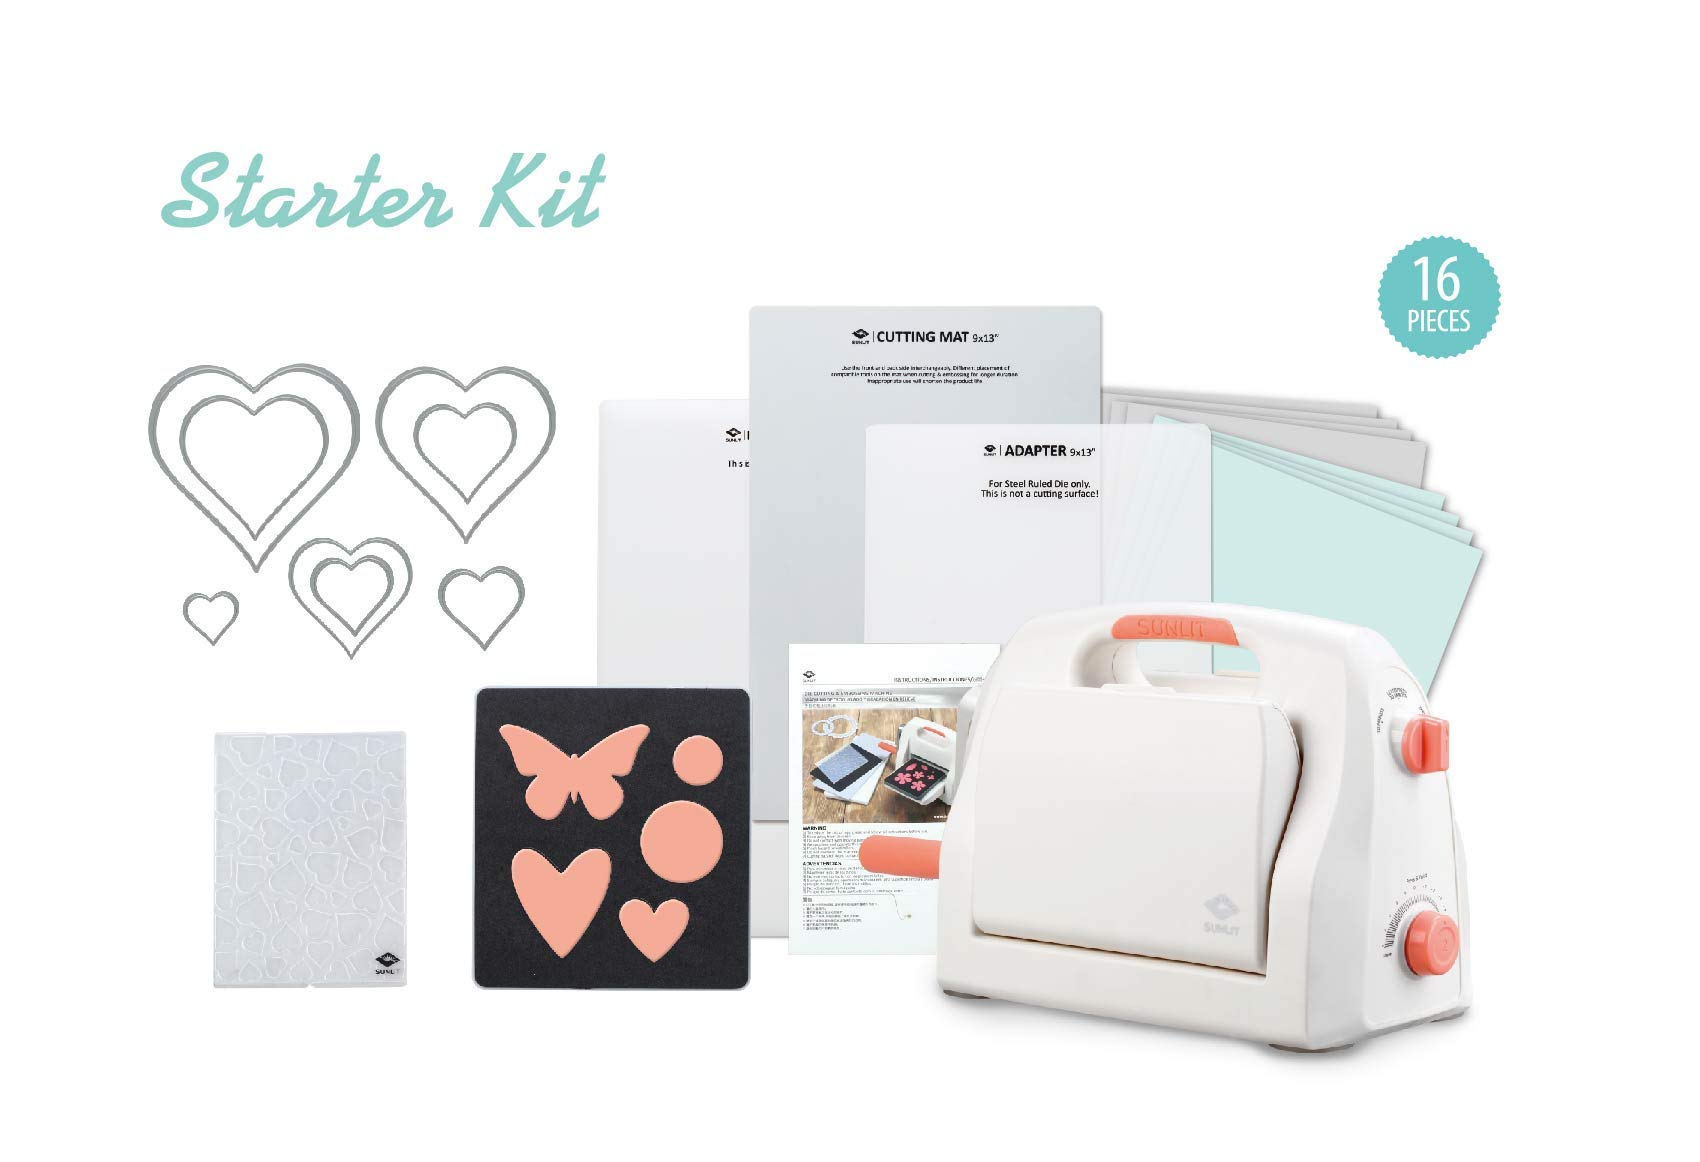 Bira Craft Adjustable Die Cutting & Embossing Machine Starter KIT, 9'' Opening, Paper, Fabric and Other Materials.